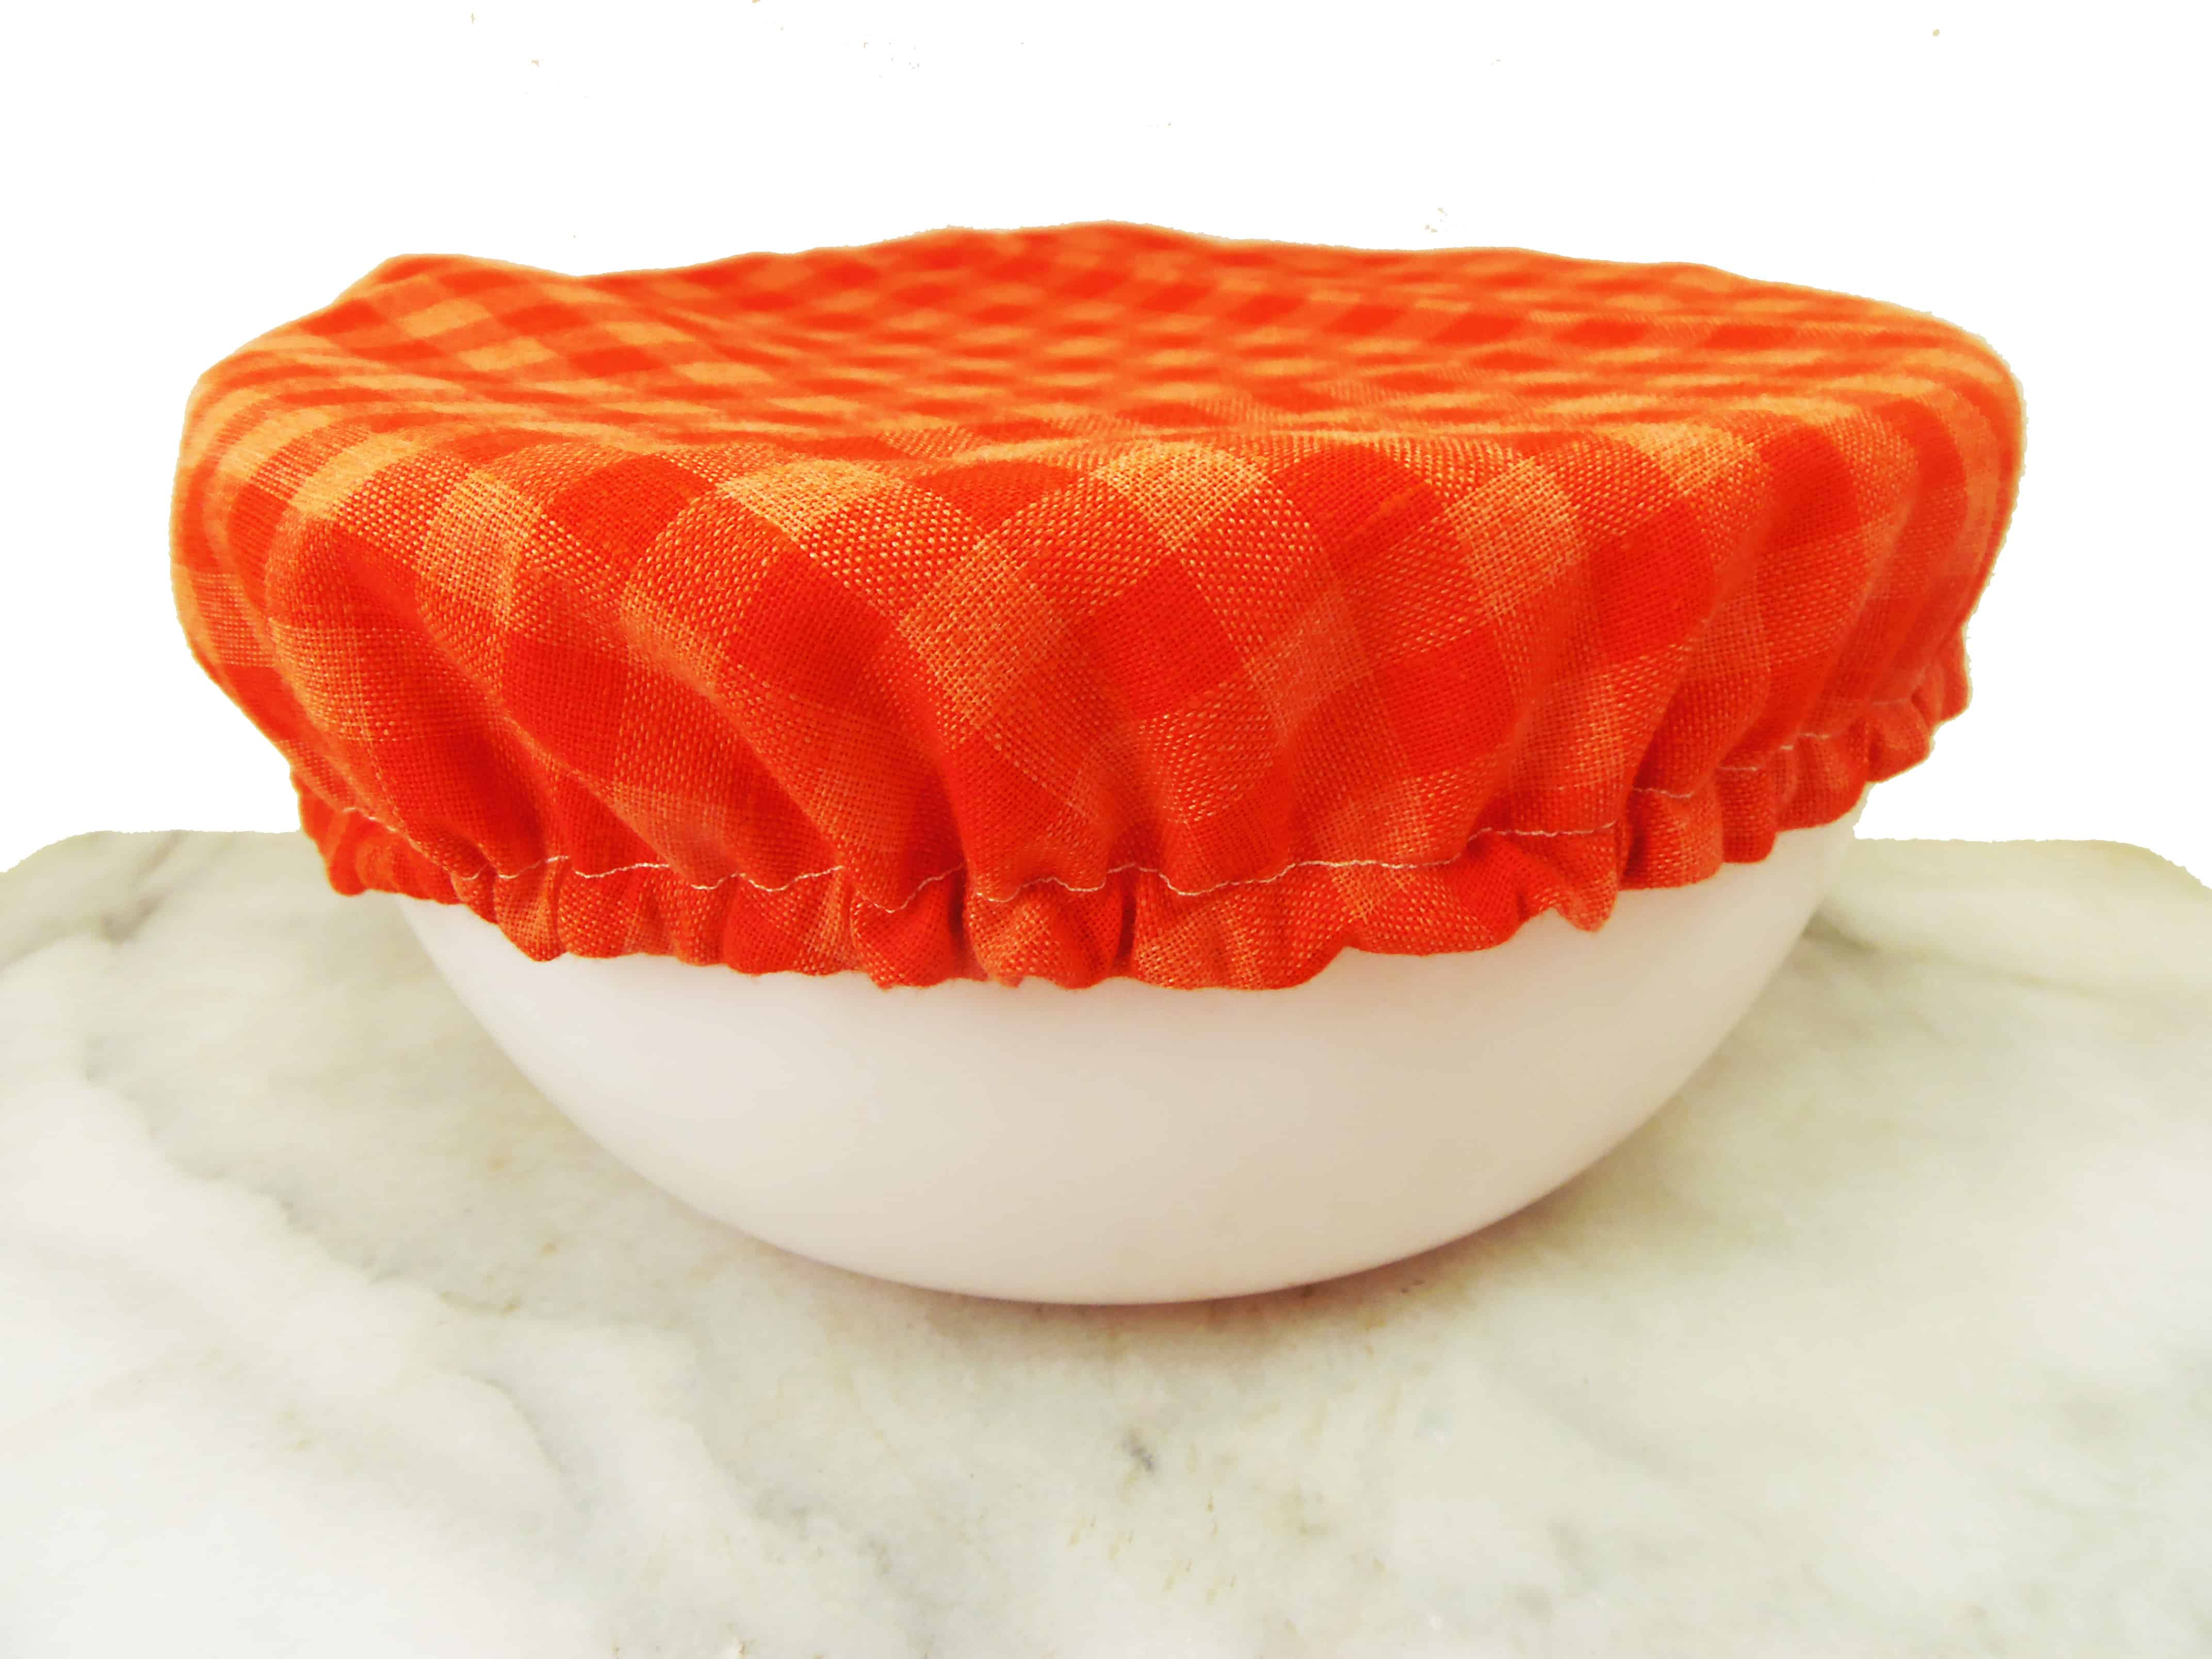 How to Make a Reusable Elastic Bowl Cover